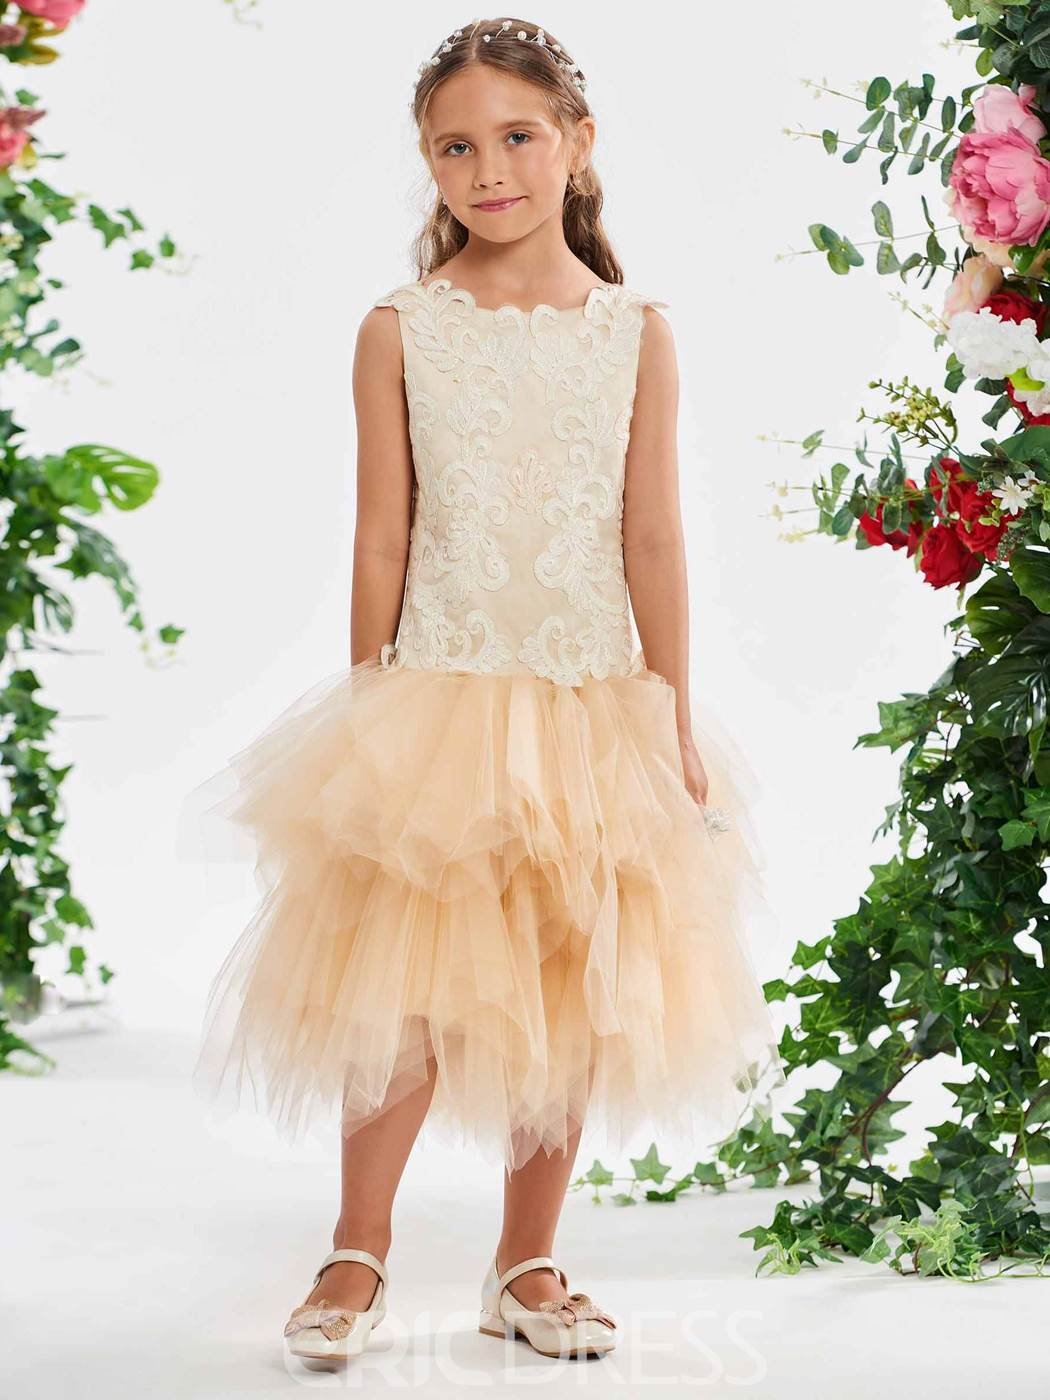 Ericdress Lace Applique Tea Lenth Flower Girl Ball Gown